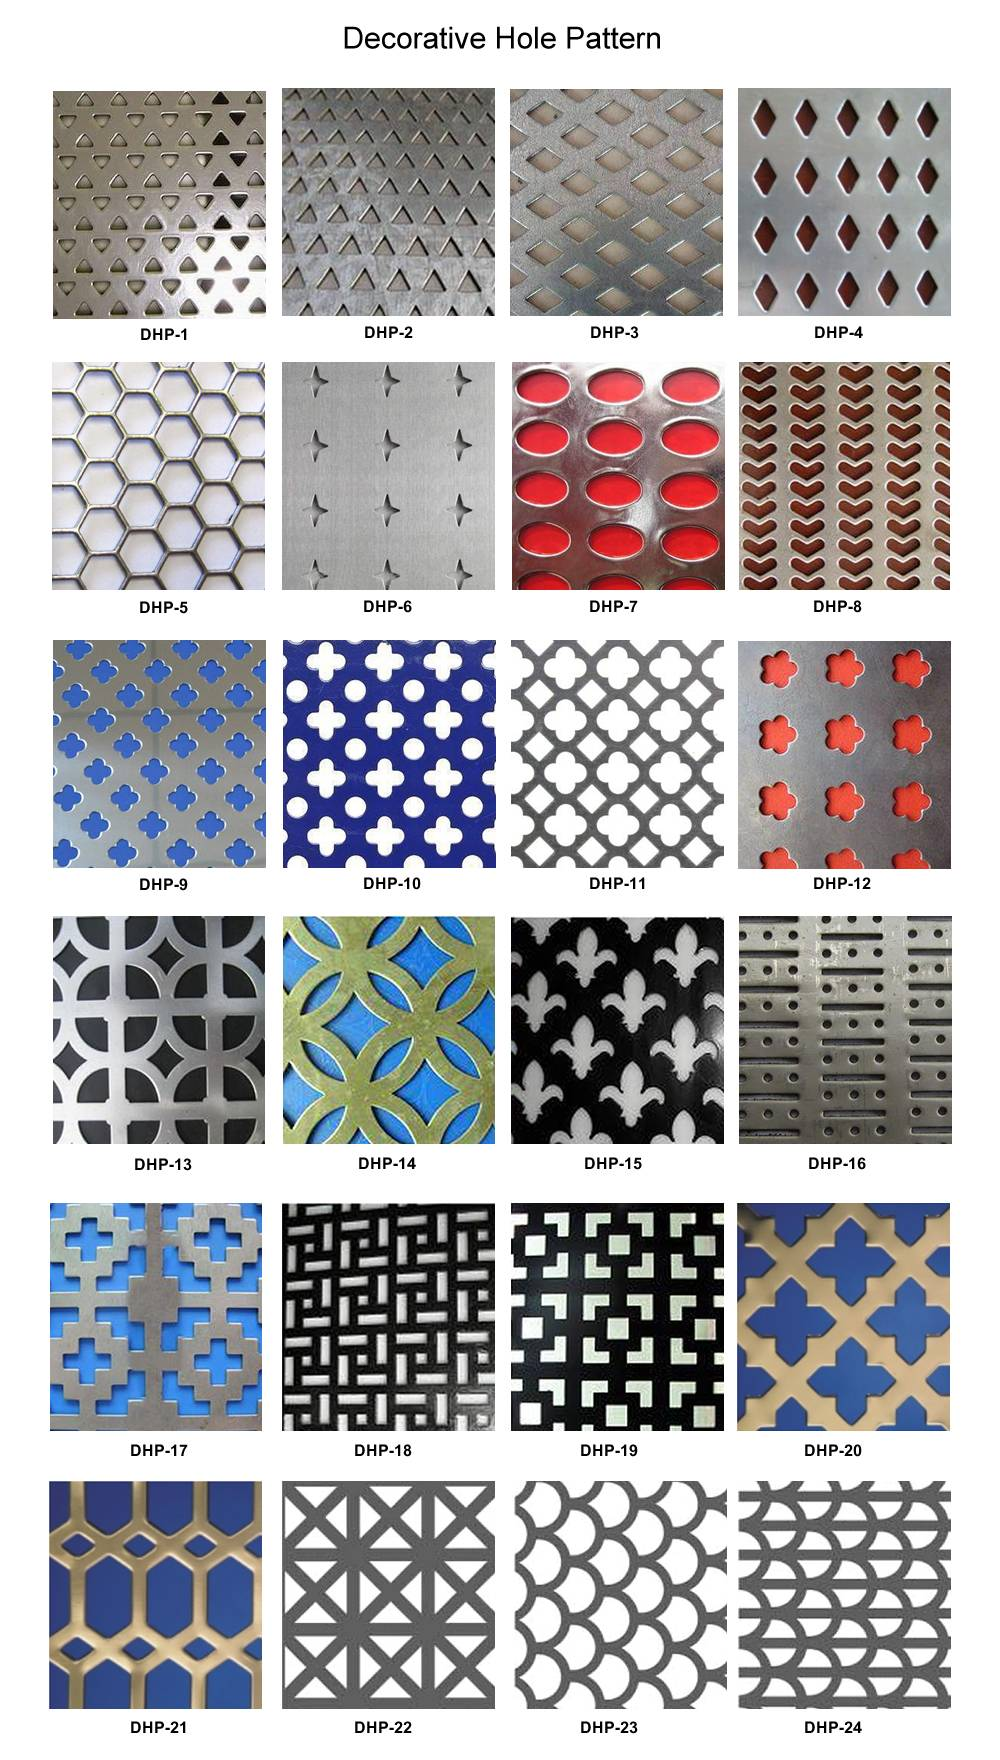 Twenty four patterns of holes for decorative perforated sheets